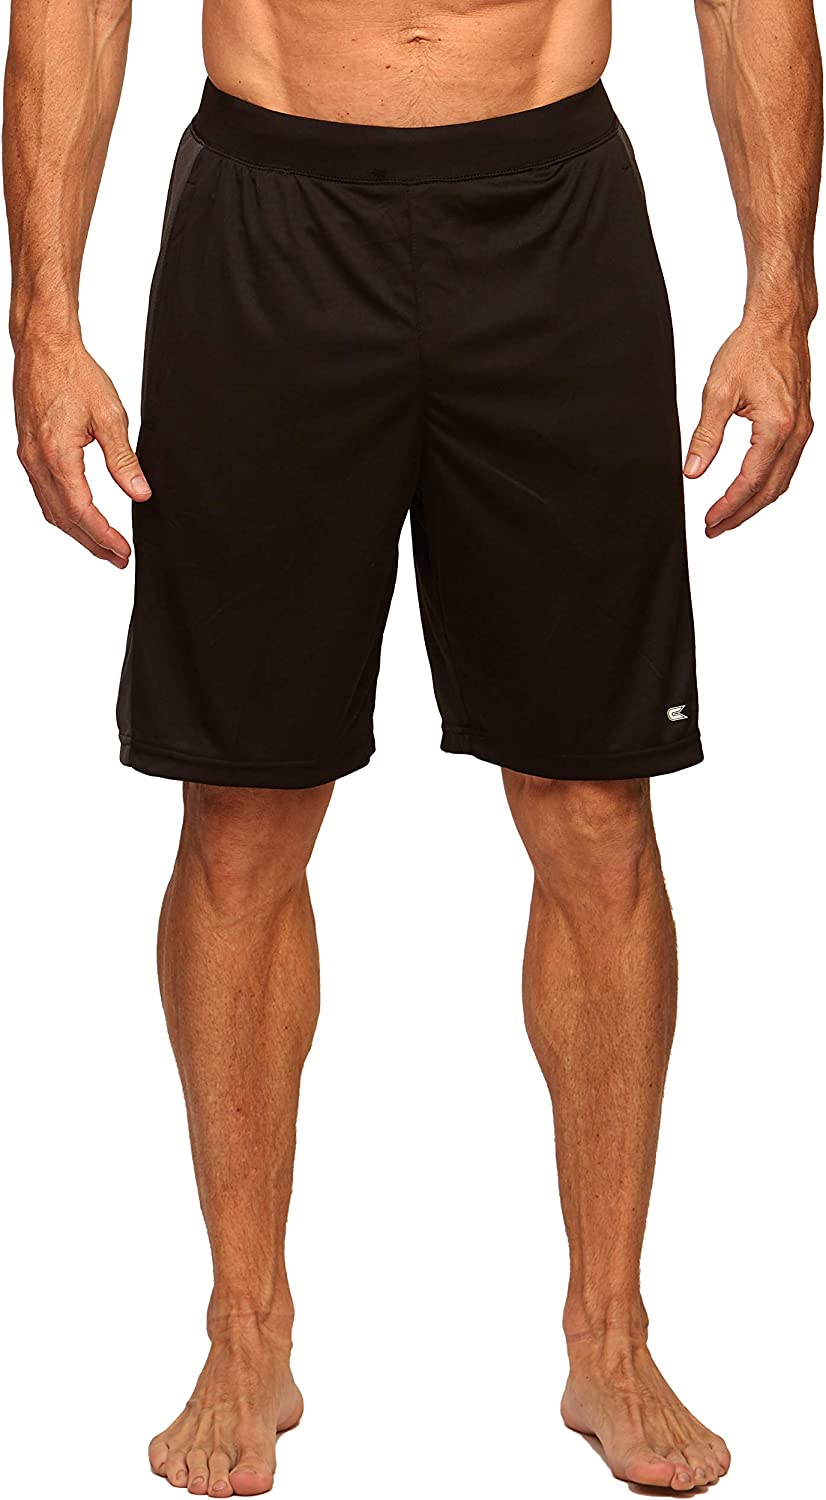 Colosseum Active Men's Four Way Stretch Gym Shorts with Elastic Waistband